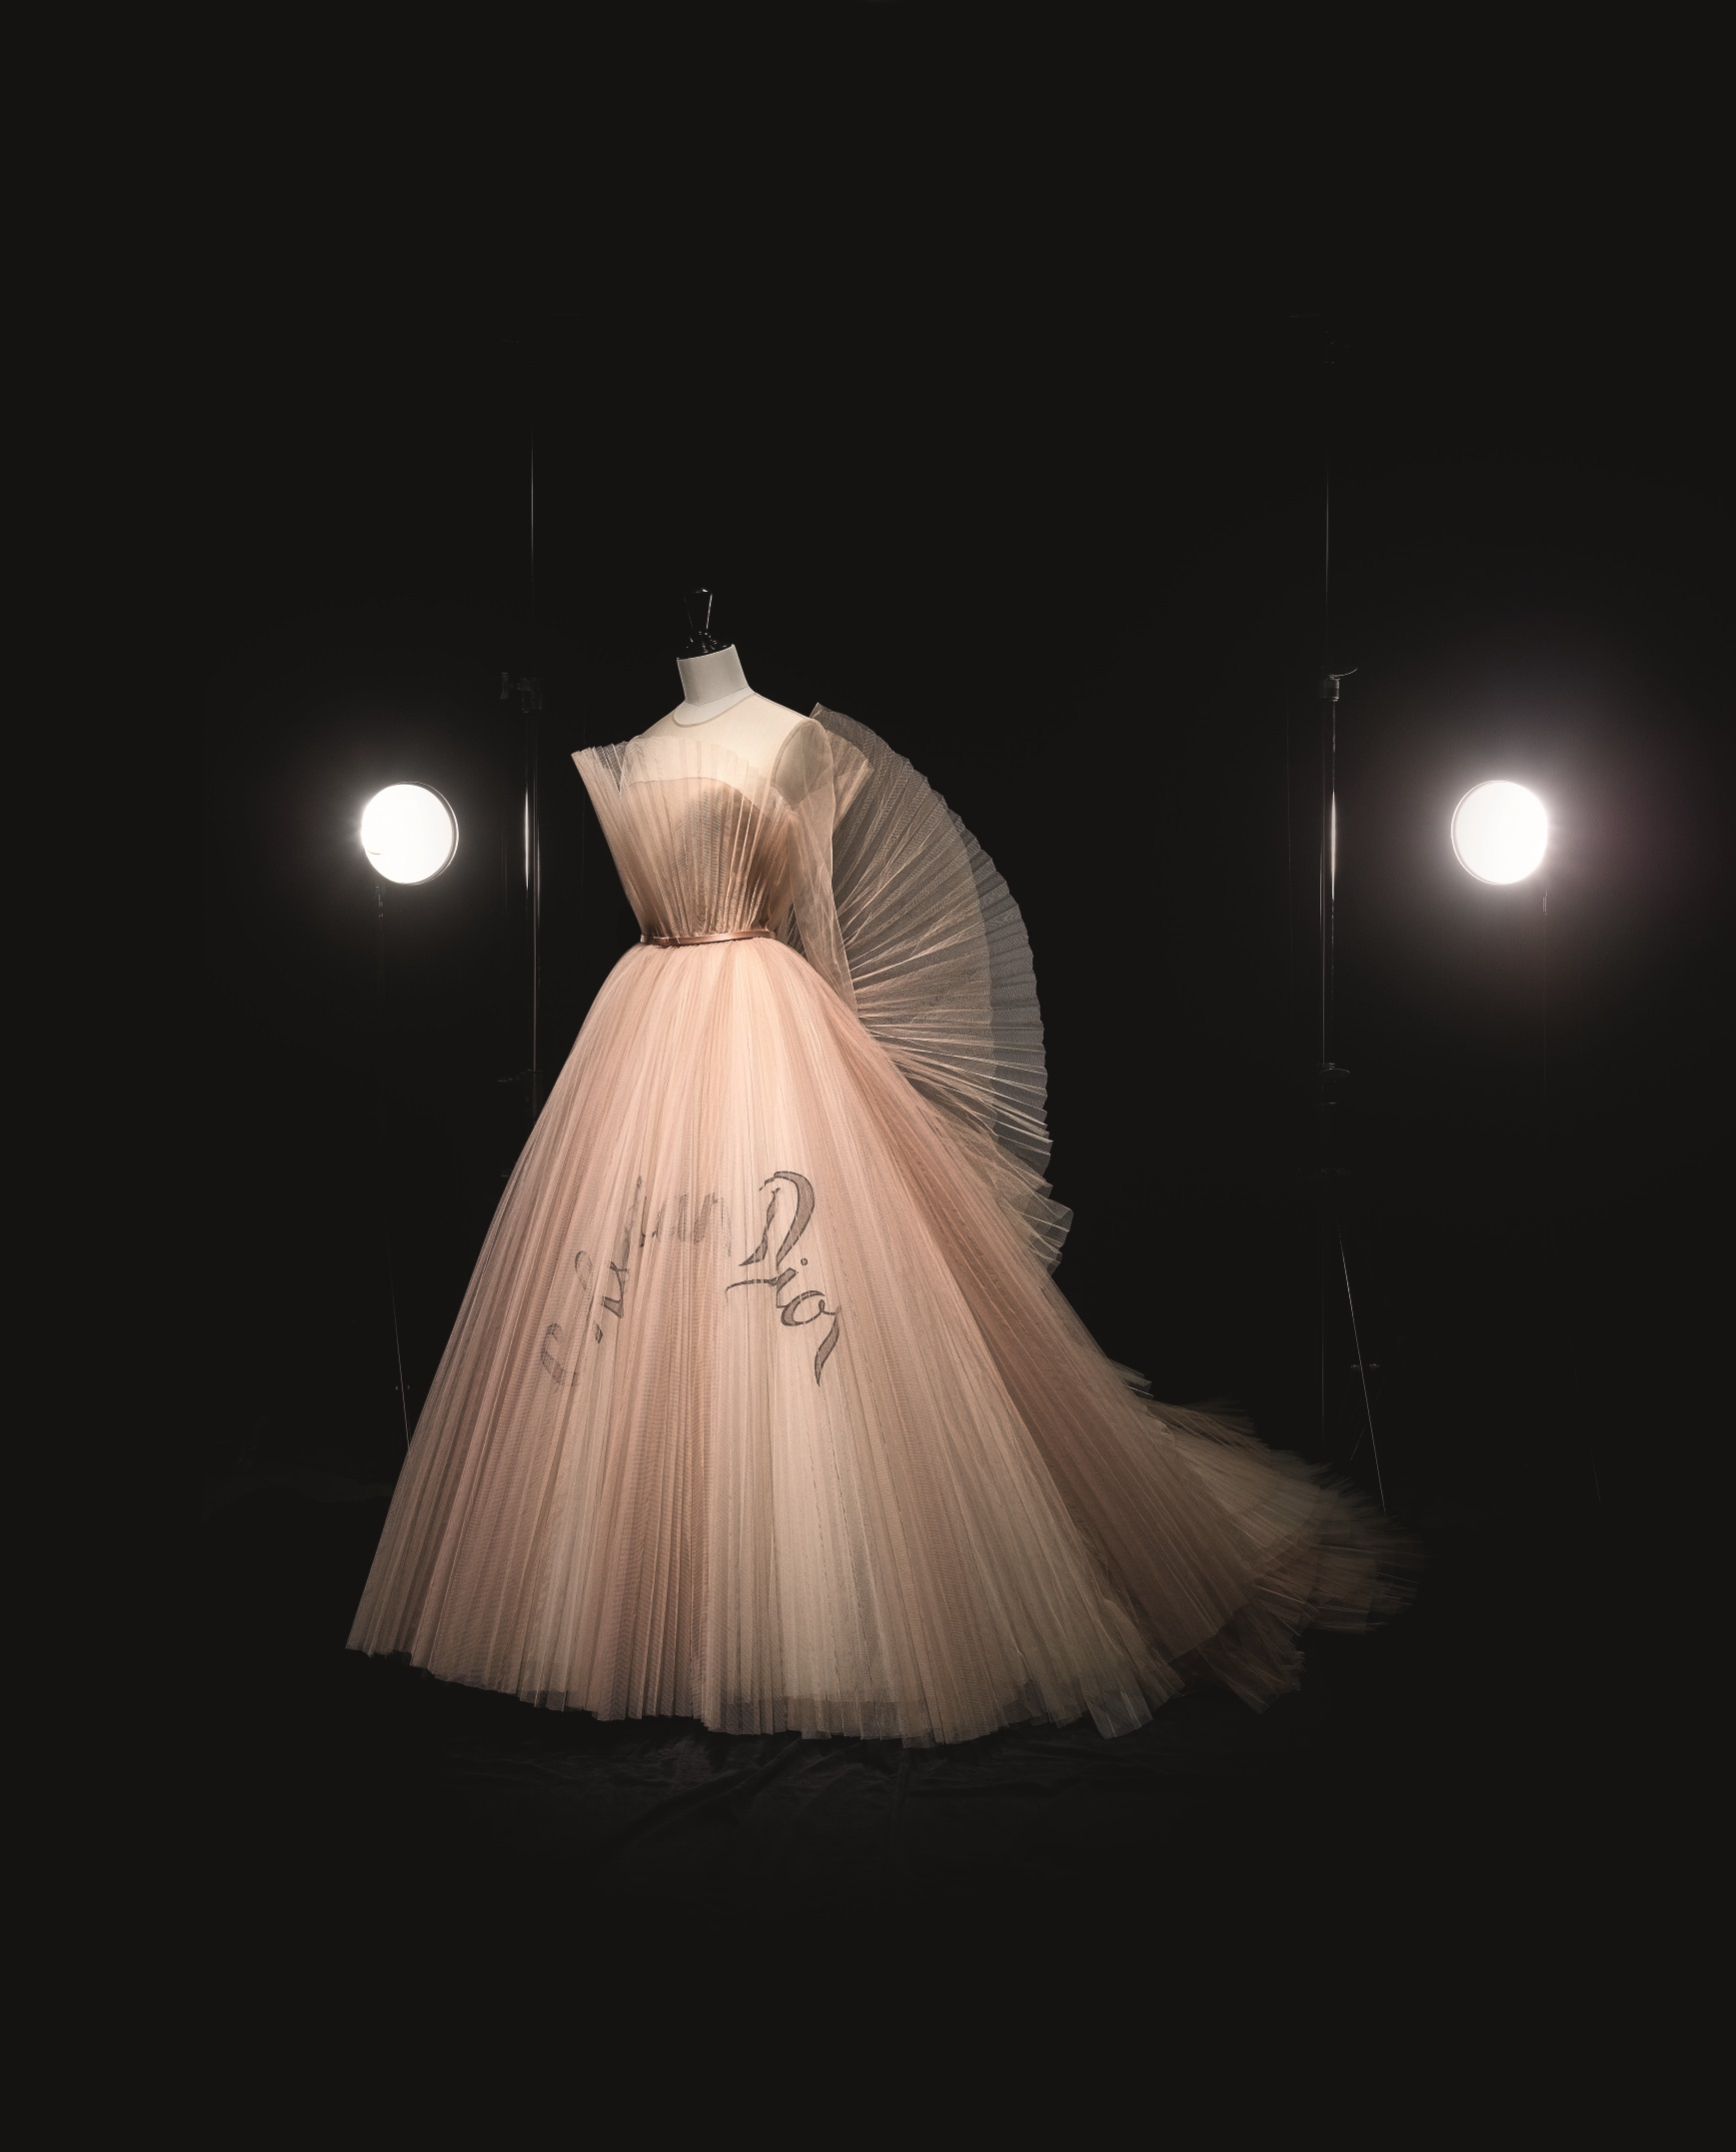 Christian Dior by Maria Grazia Chiuri (b.1964), Dress, Haute Couture, SpringSummer 2018. Photo (c) Laziz Hamani. Laziz Hamani. Dior Héritage collection, Paris.jpg